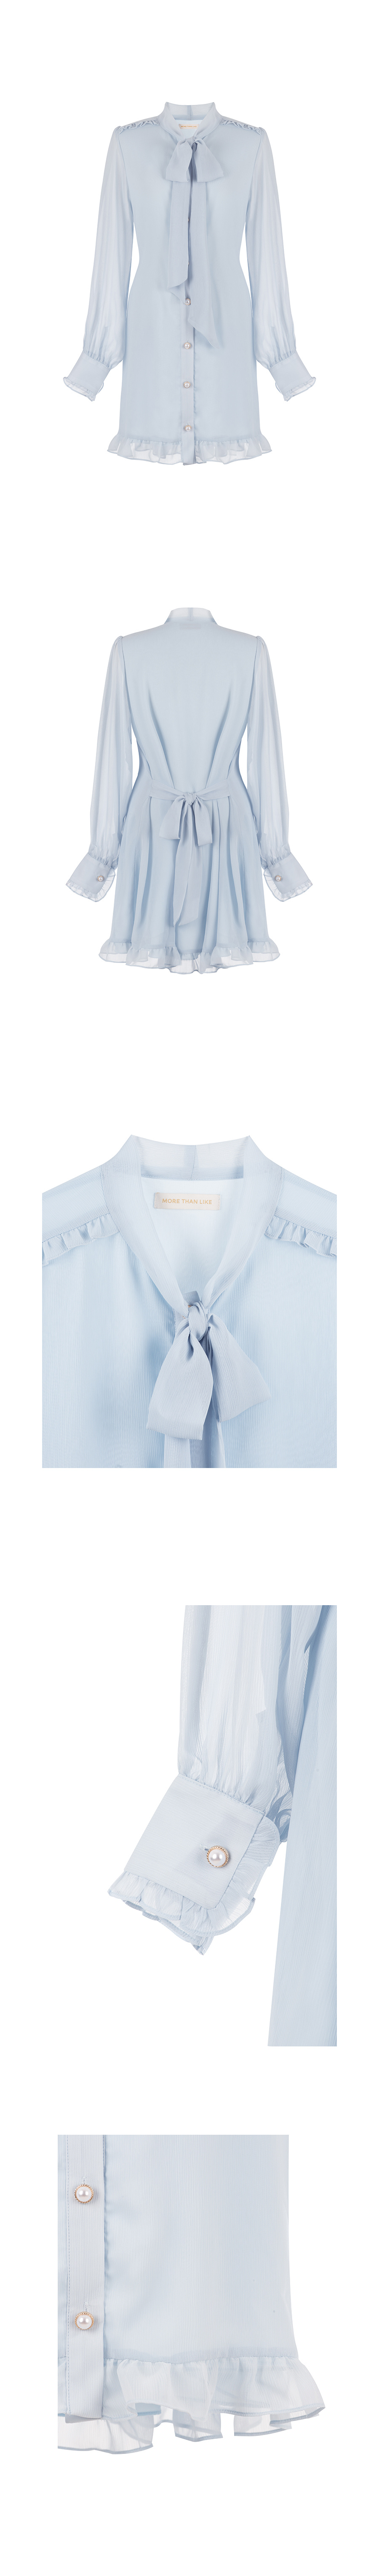 모어댄라이크(MORE THAN LIKE) FRILL BUTTON RIBBON DRESS - SKYBLUE